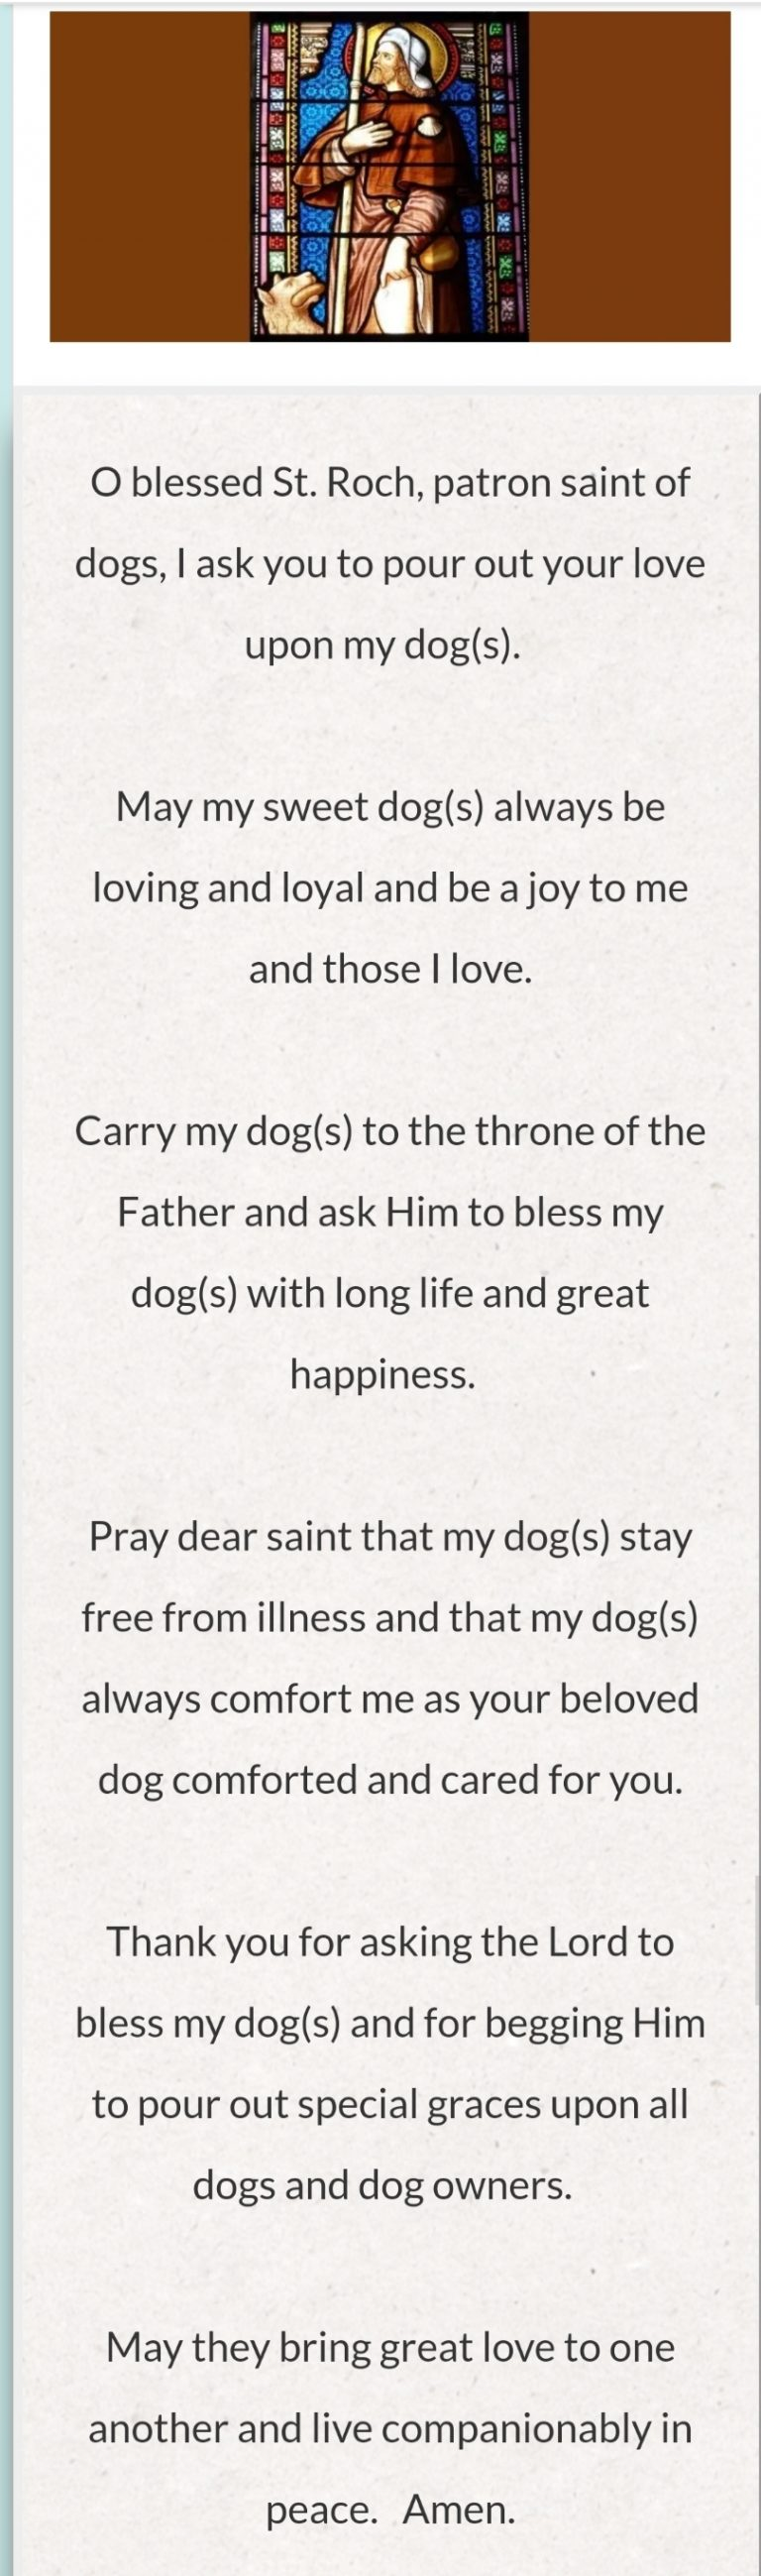 Prayer of Saint Roque